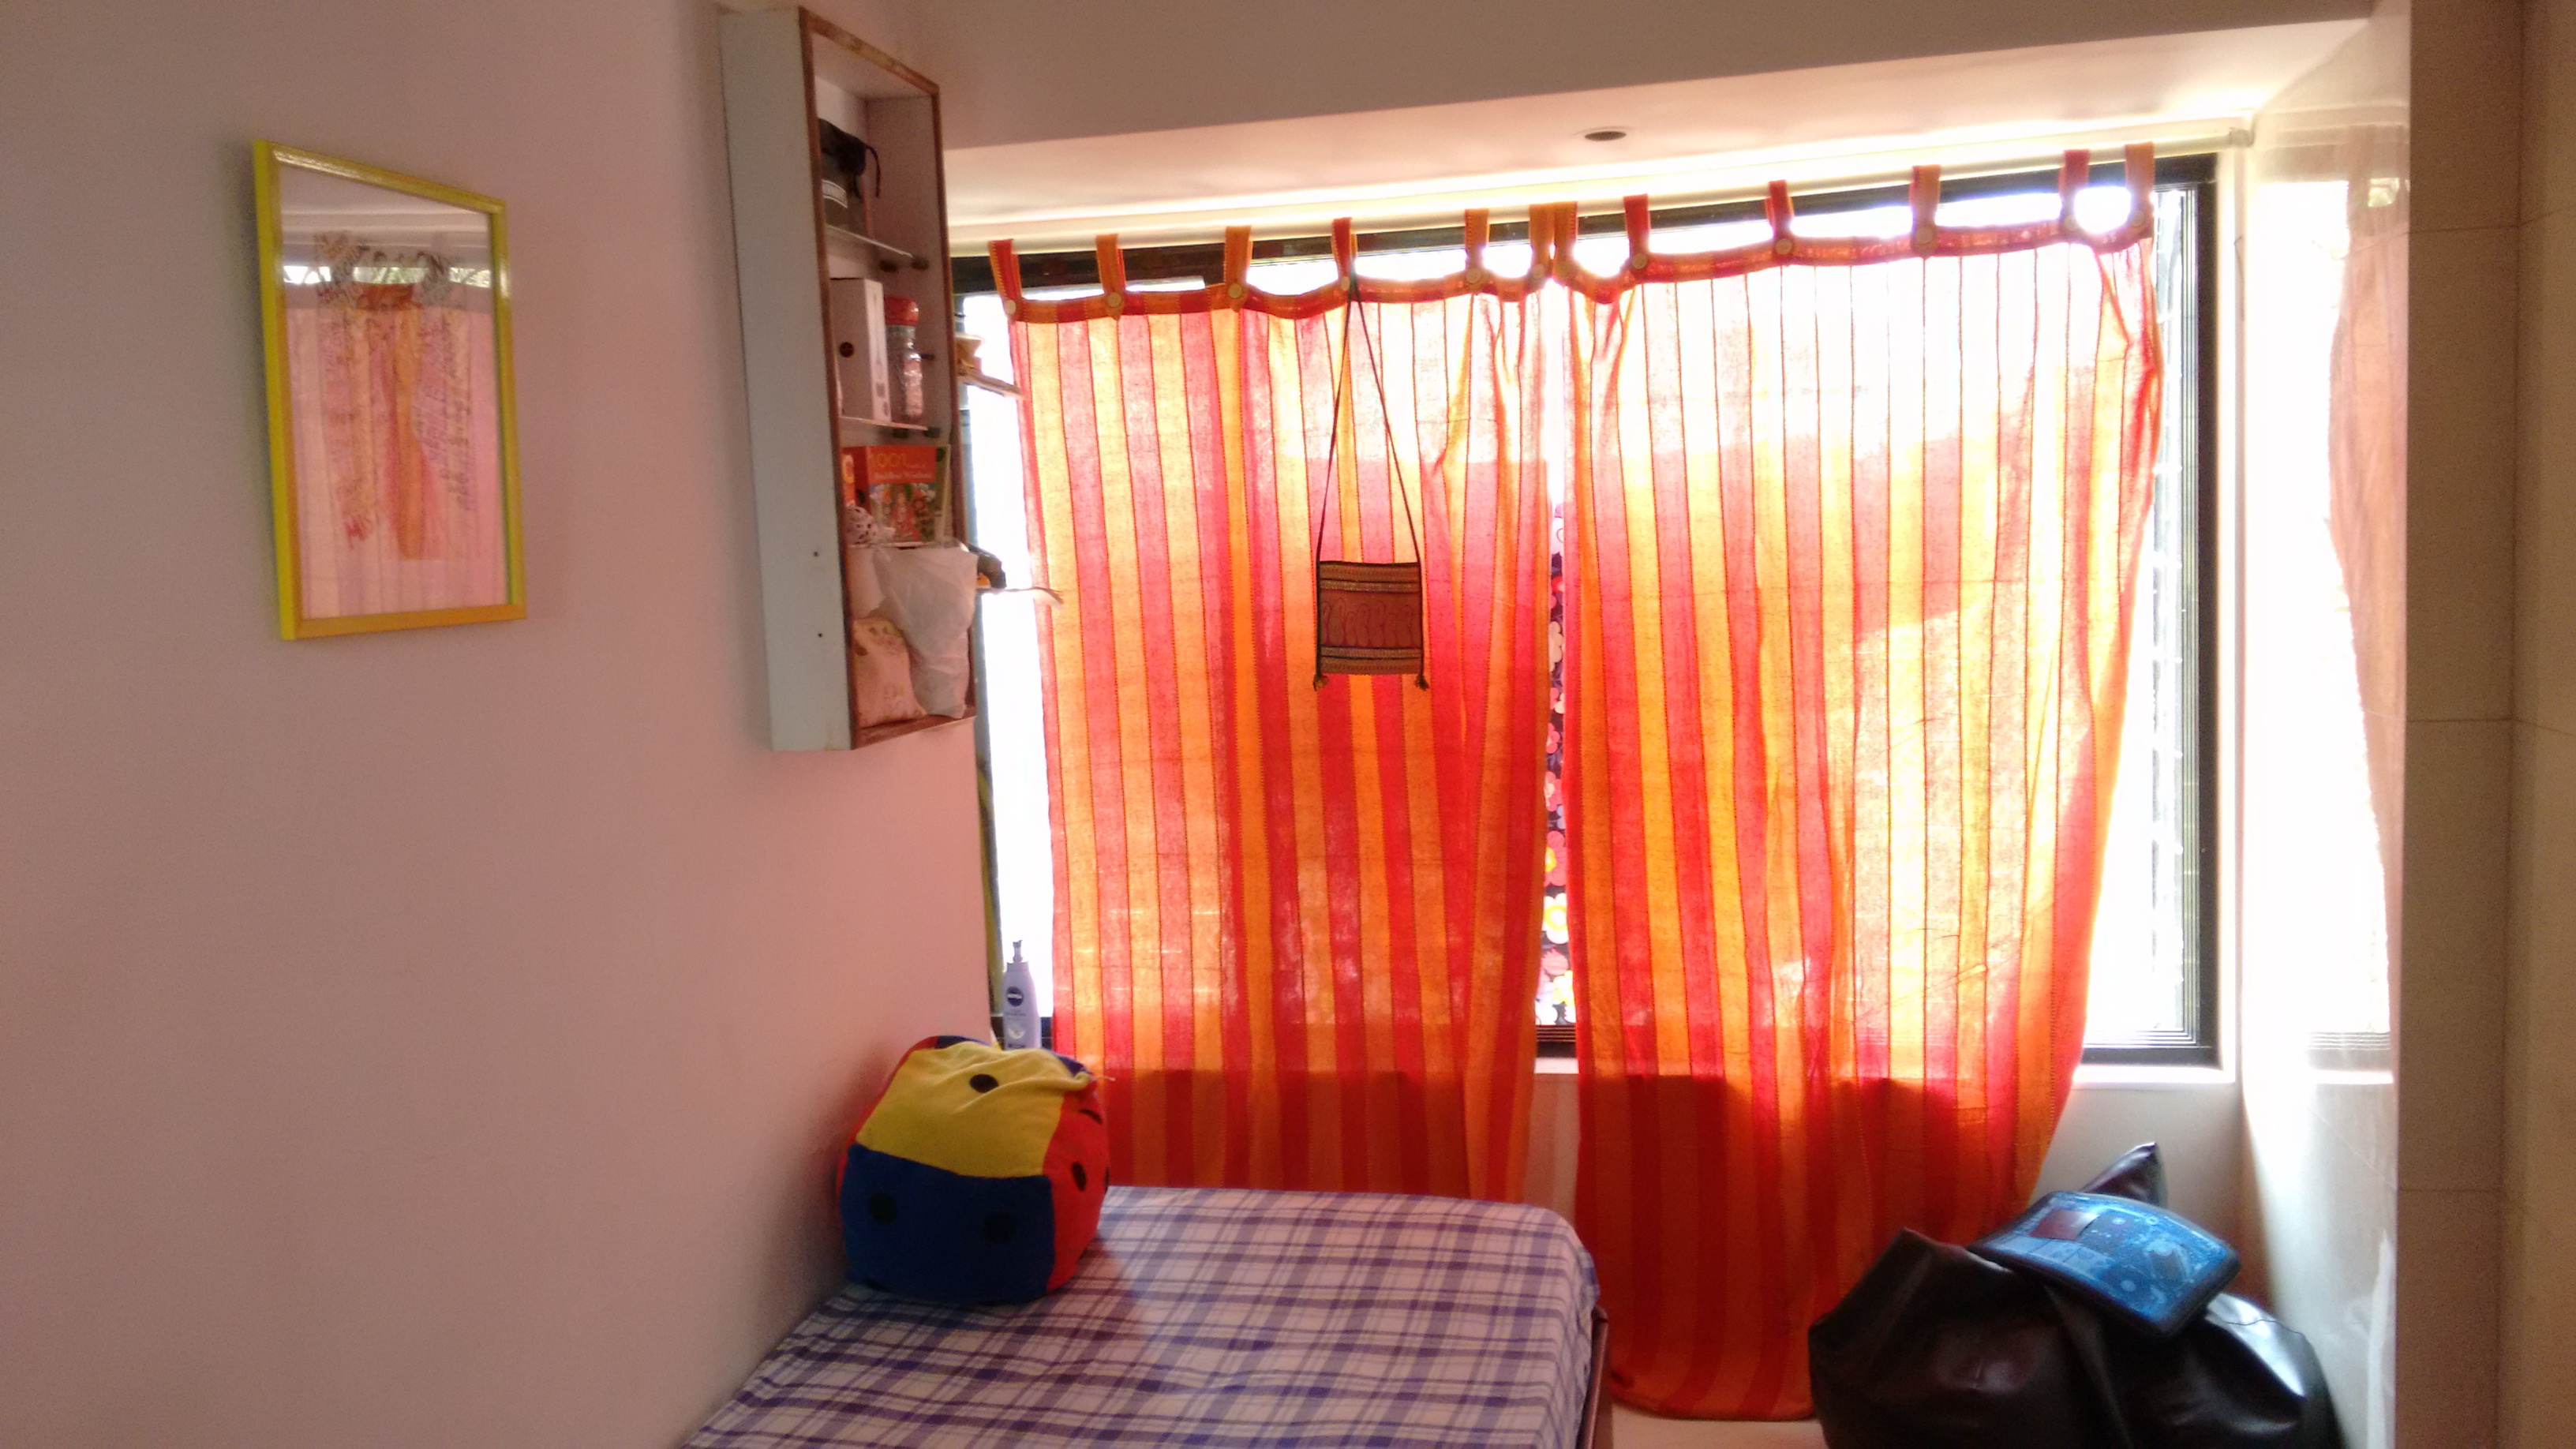 My own room | Orange curtains from http://www.ebay.in/ and Fabindia bedcover from Snapdeal | Chai High is an Indian Fashion Blog started by Shivani Krishan